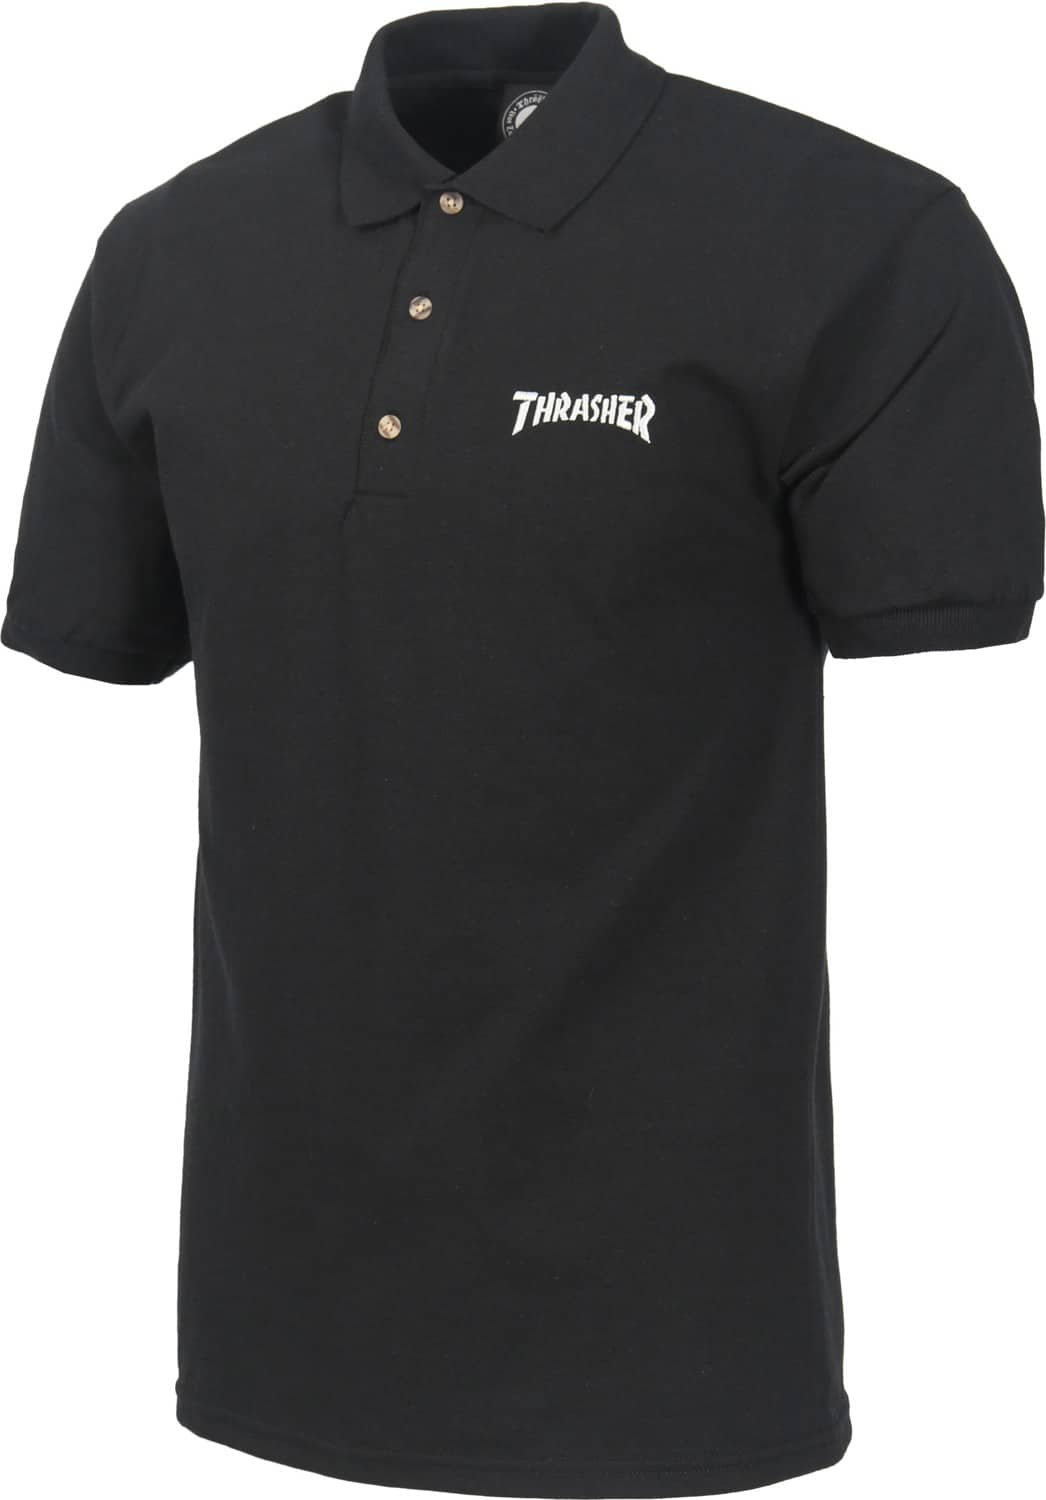 Thrasher Logo Embroidered Polo Shirt Black Free Shipping